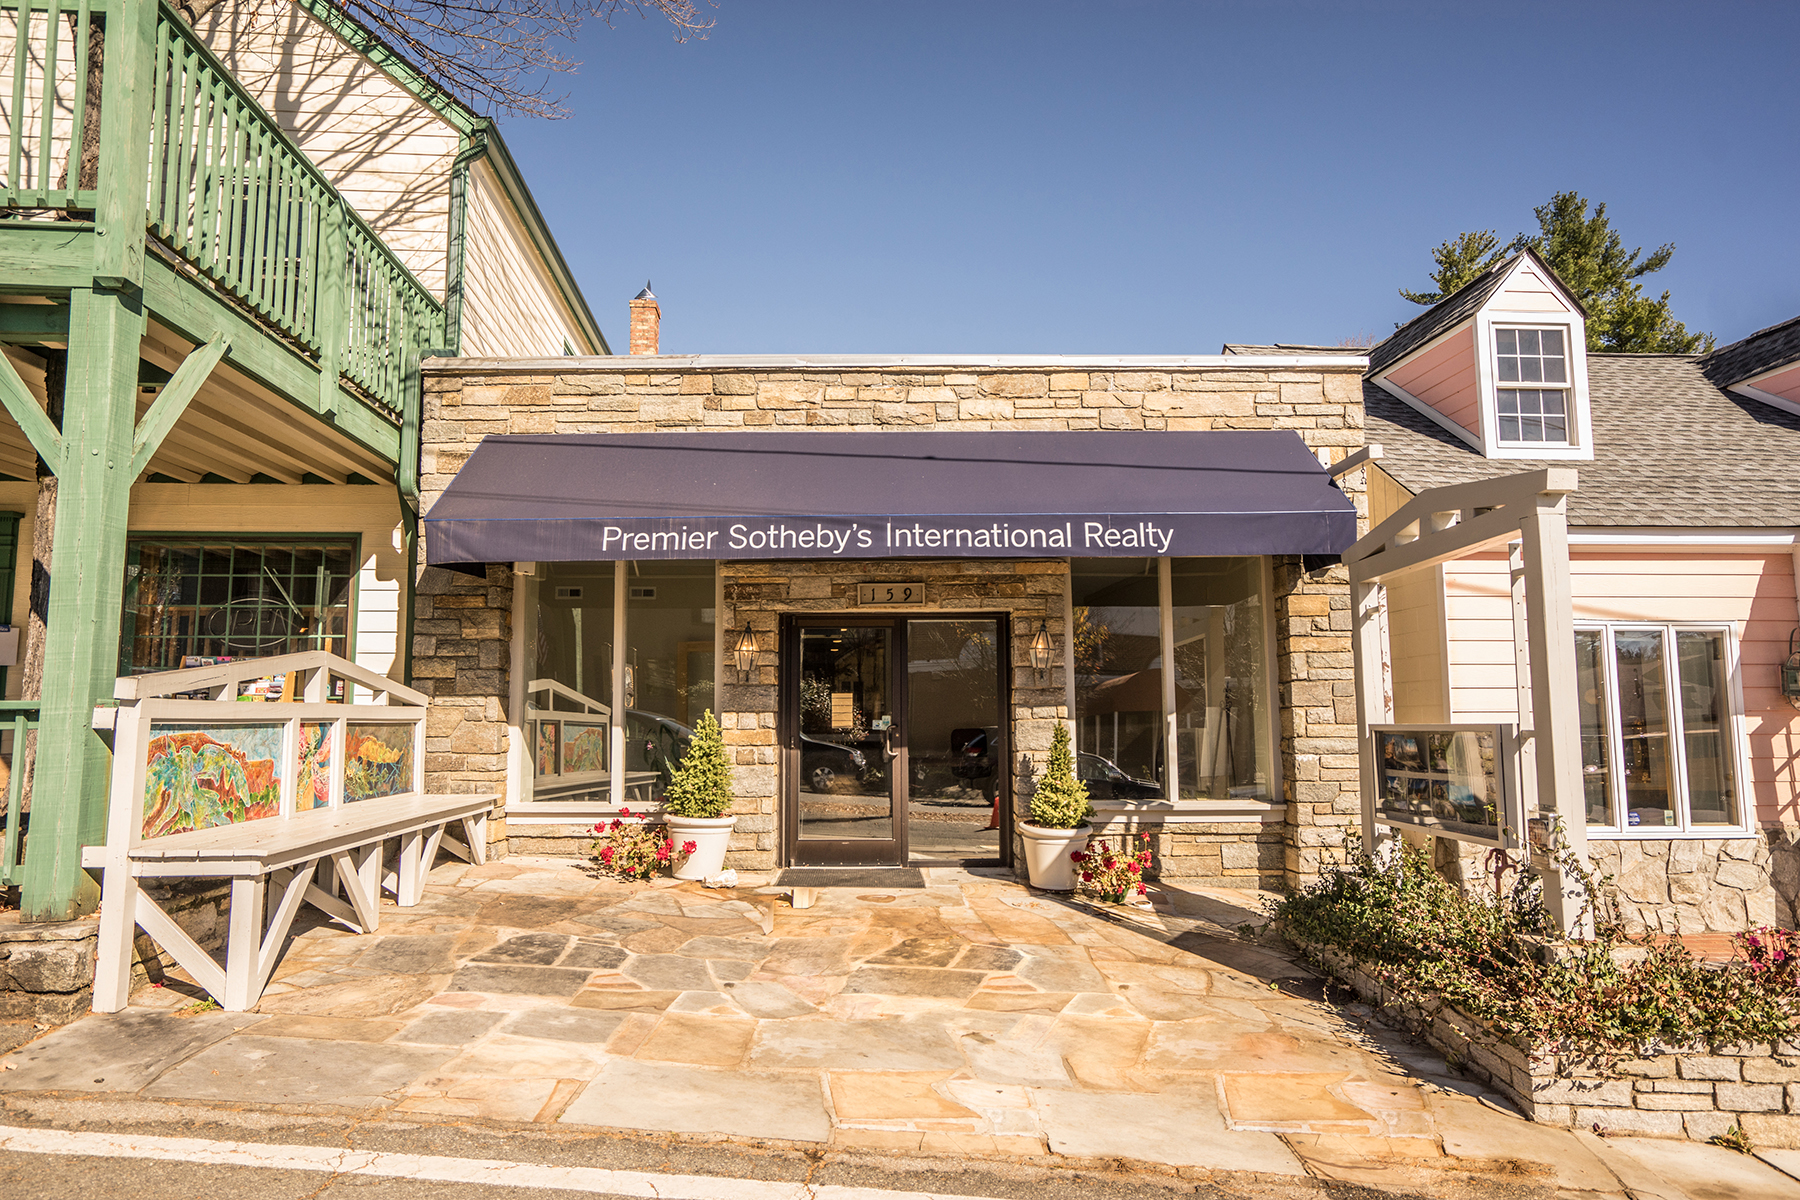 Commercial for Sale at Blowing Rock 159 Sunset Drive, Blowing Rock, North Carolina 28605 United States